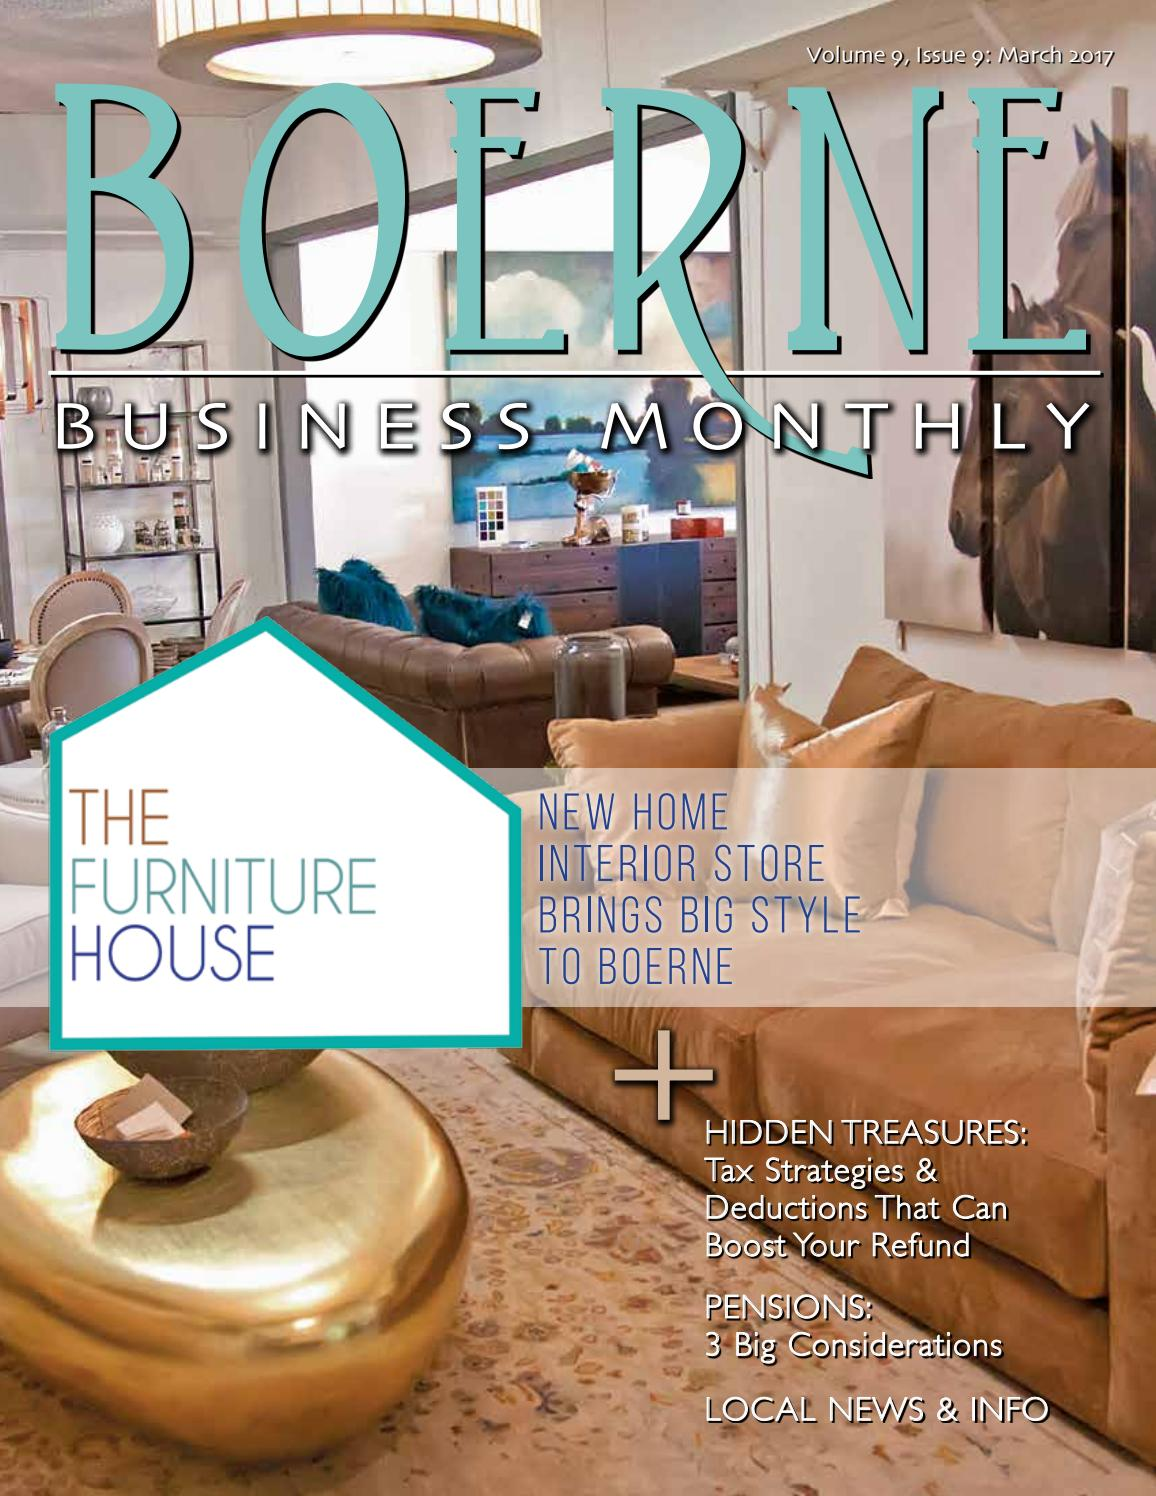 Boerne Business Monthly   March 2017 By Boernemag   Issuu